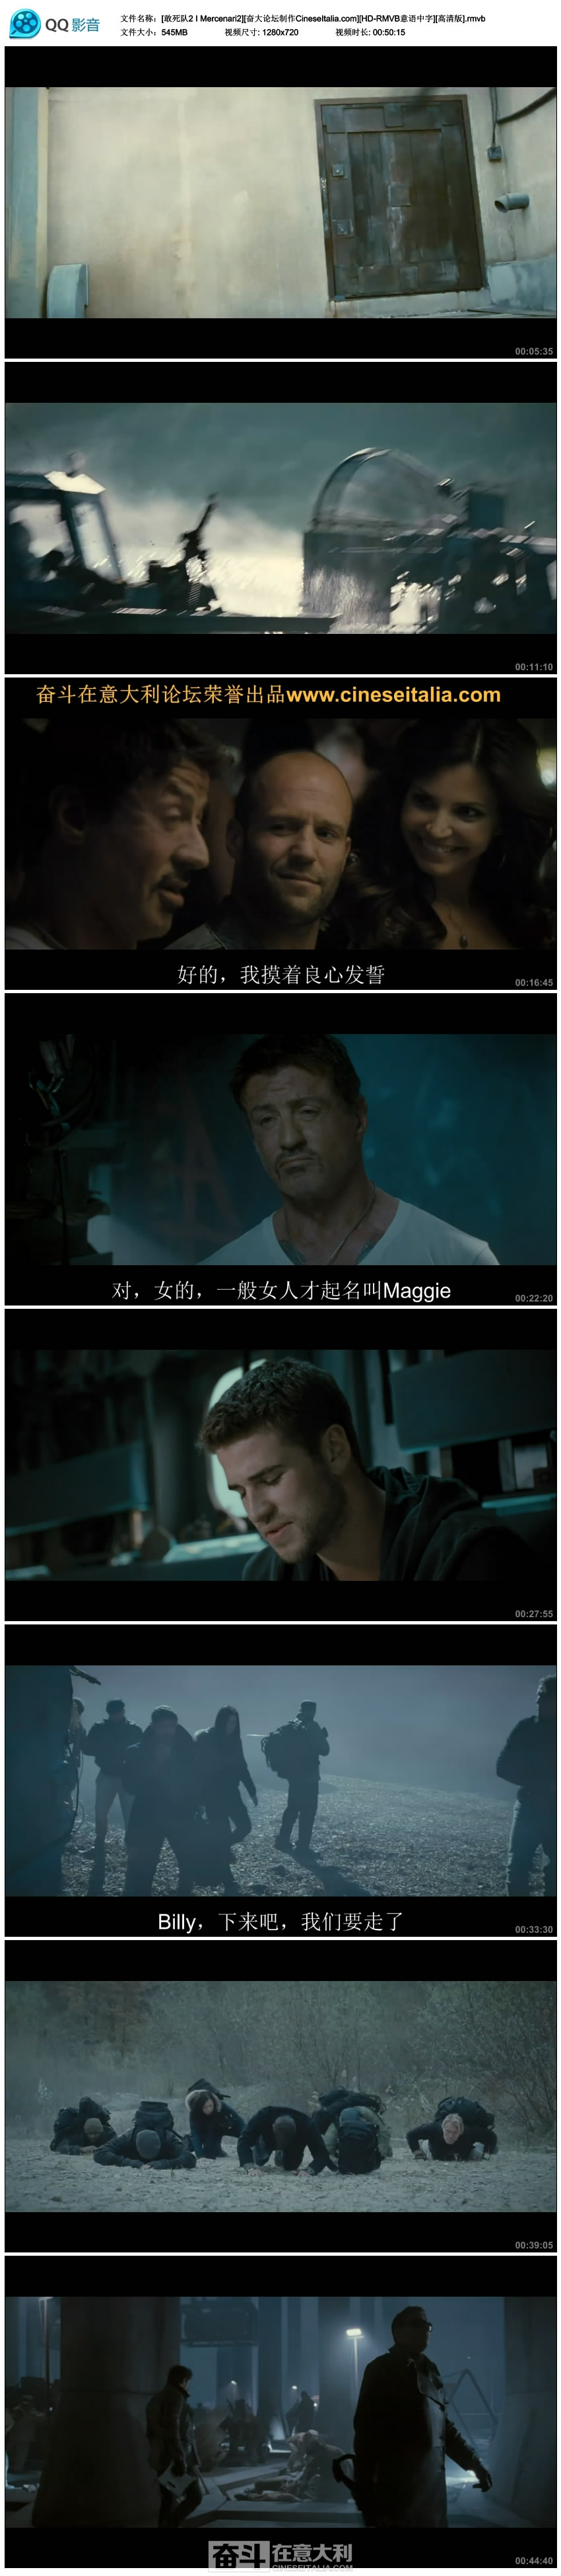 [敢死队2 I Mercenari2][奋大论坛制作CineseItalia.com][HD-RMVB意语中字][高清版].rmvb_thumbs_2015.01.18.11_47_57.jpg